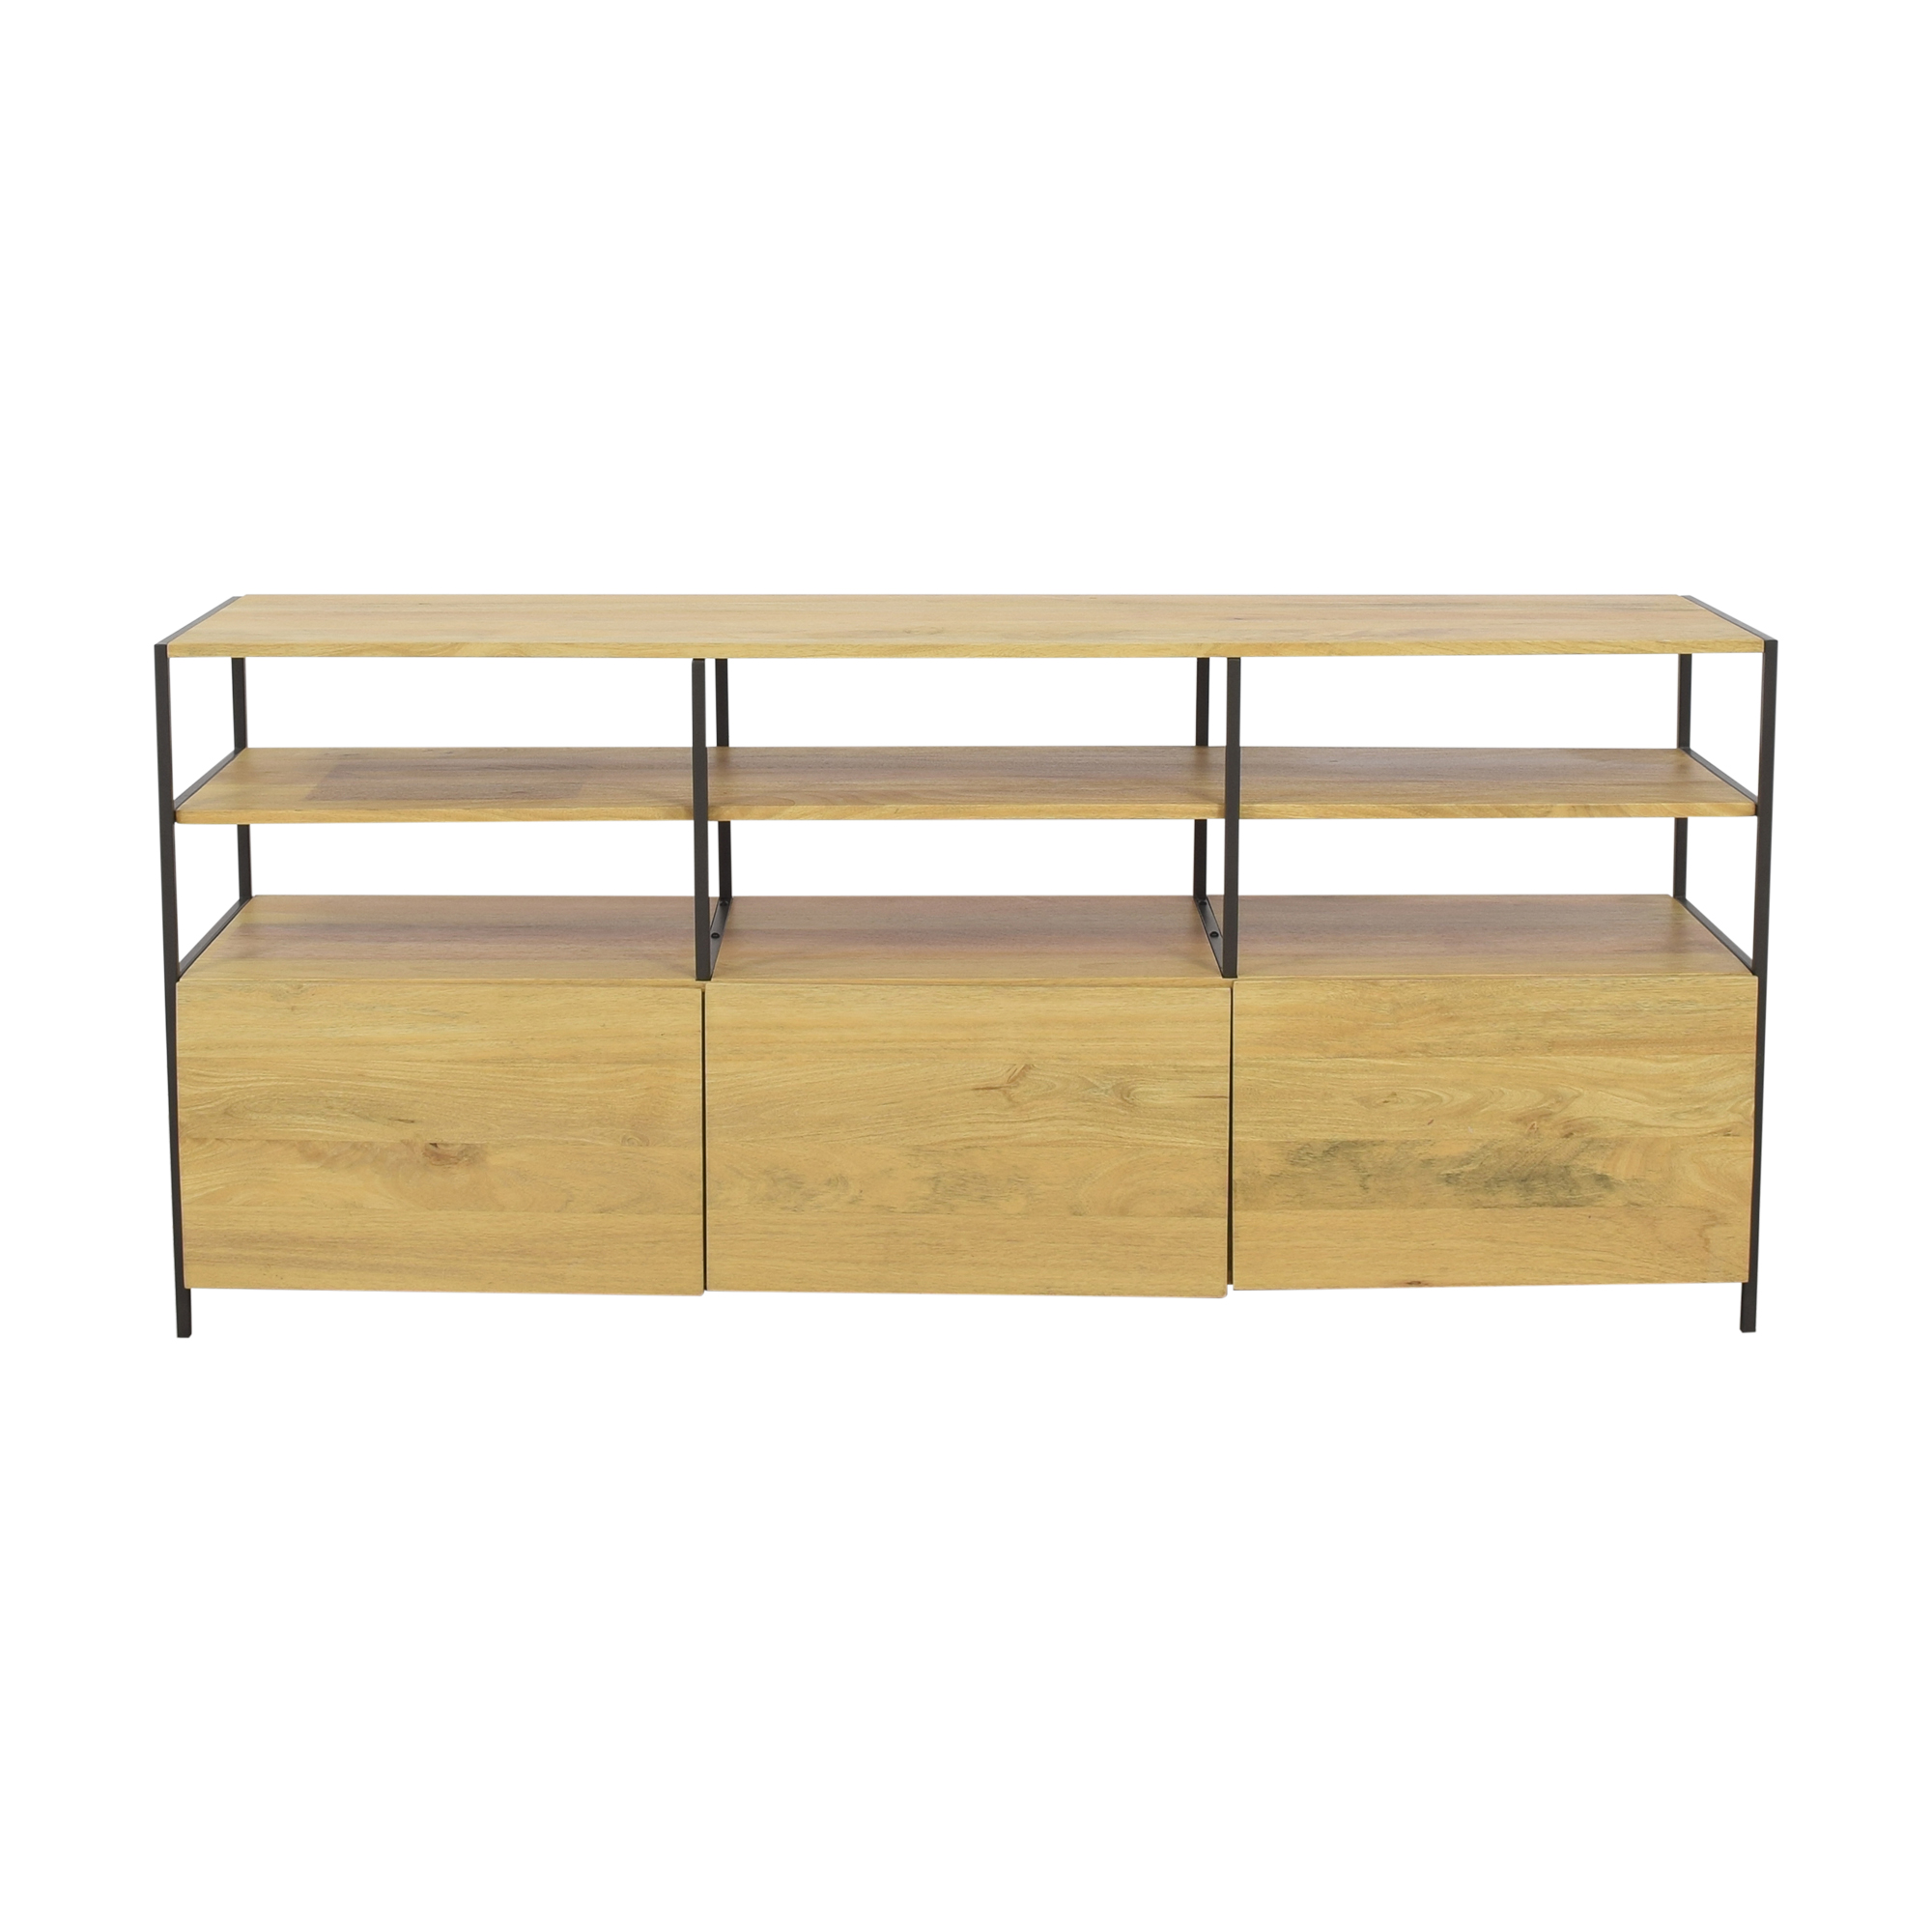 West Elm West Elm Industrial Modular Media Center price